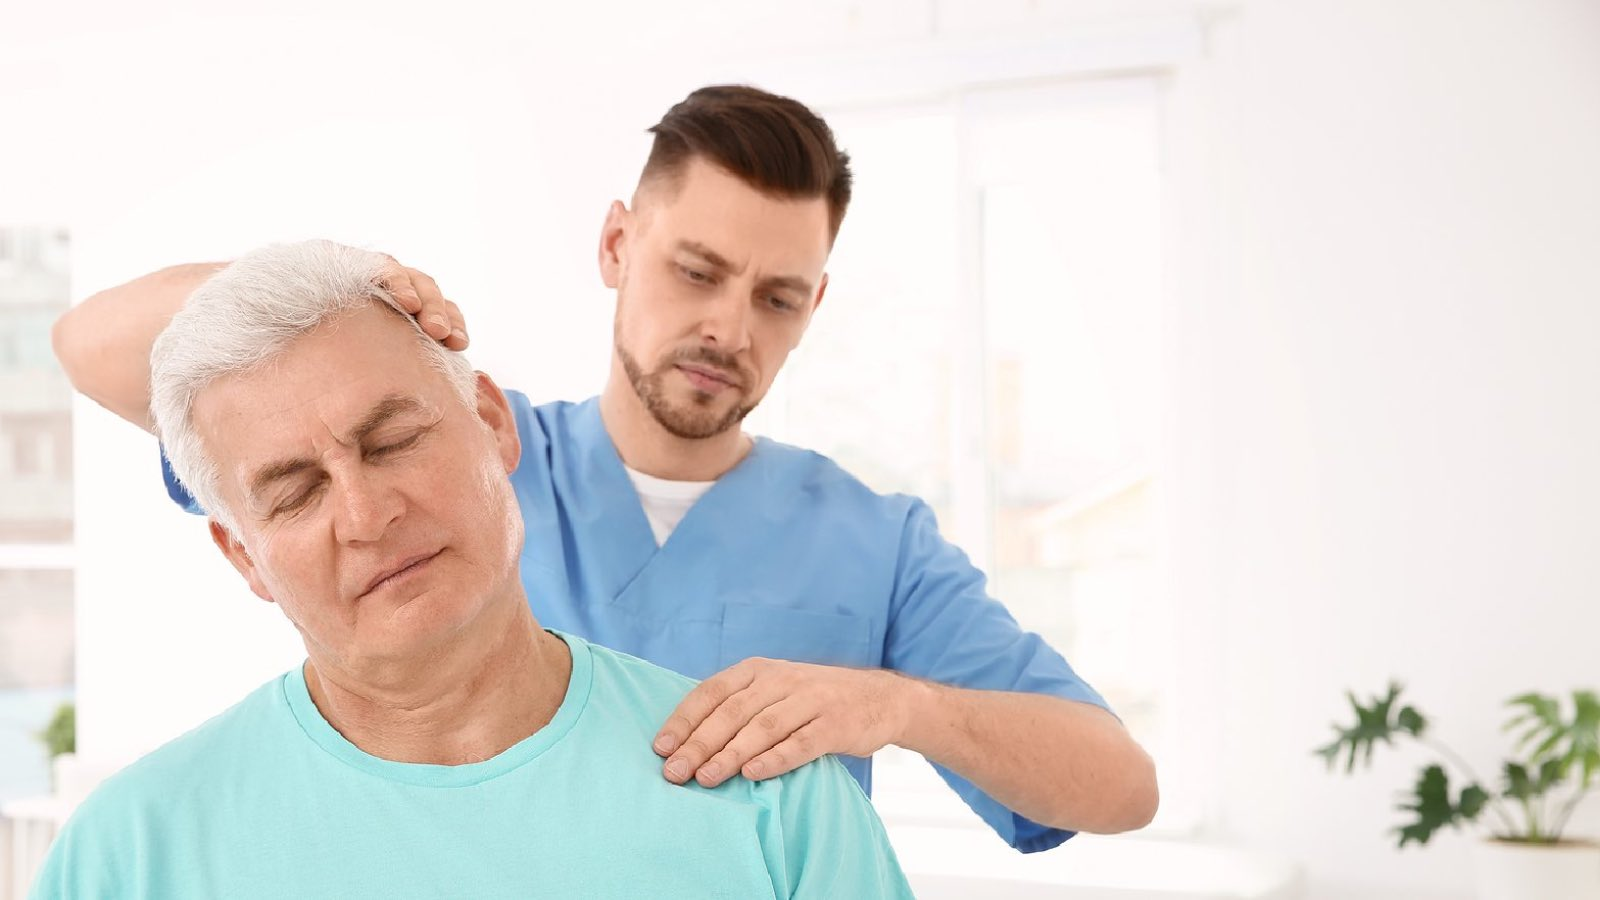 Cervicogenic Headaches Programme : Improve your patients' outcome by confidently assessing and managing headaches generated in the upper cervical spine and surrounding muscles